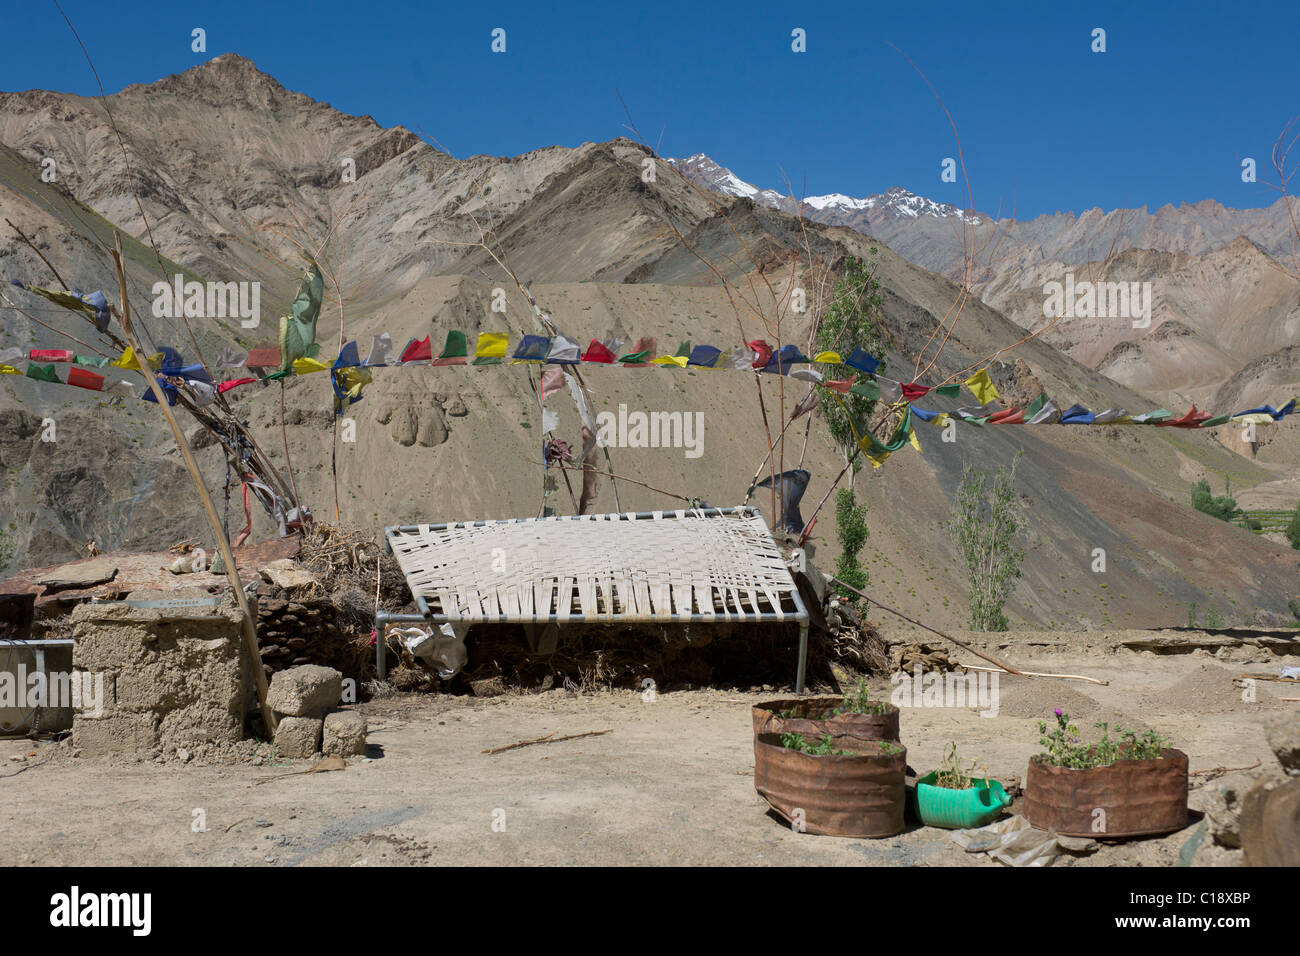 Old charpoy bed and prayer flags on a rooftop, Lamayuru Gompa, Lamayuru, (Ladakh) Jammu & Kashmir, India - Stock Image